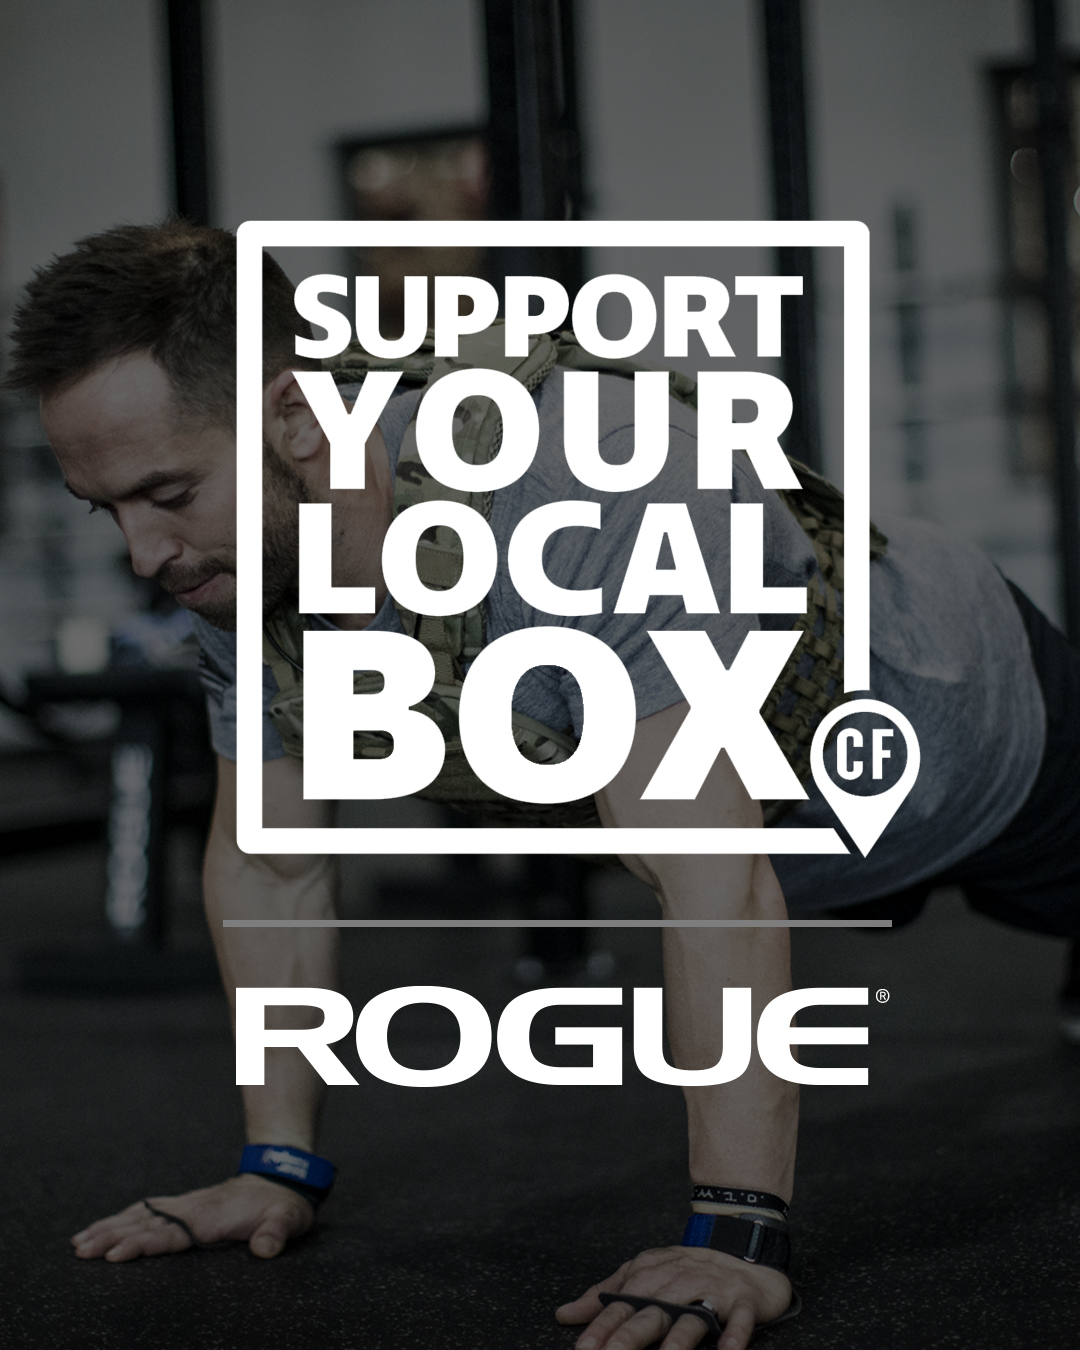 Support Your Local Box Fundraiser - Rogue